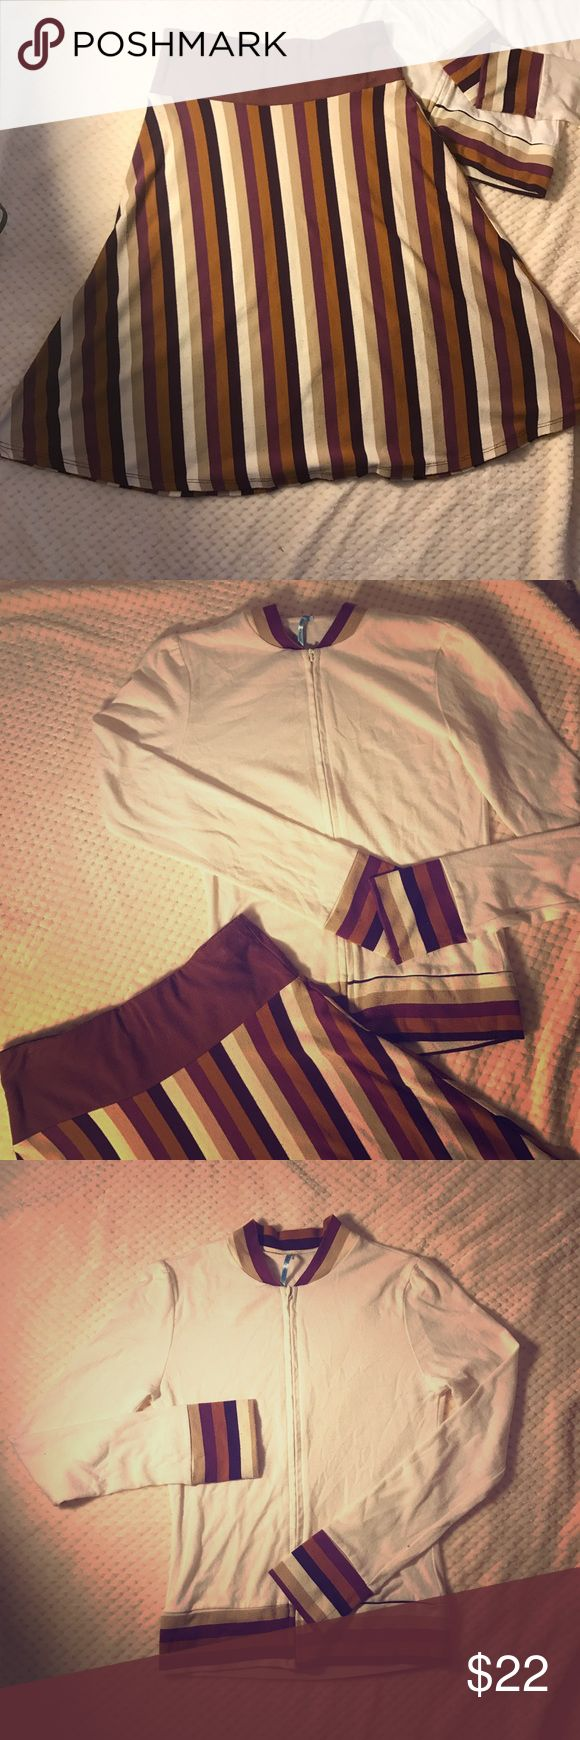 Striped zip up top and skirt co-ord set Lightly worn but in great condition hot sauce Skirts Skirt Sets